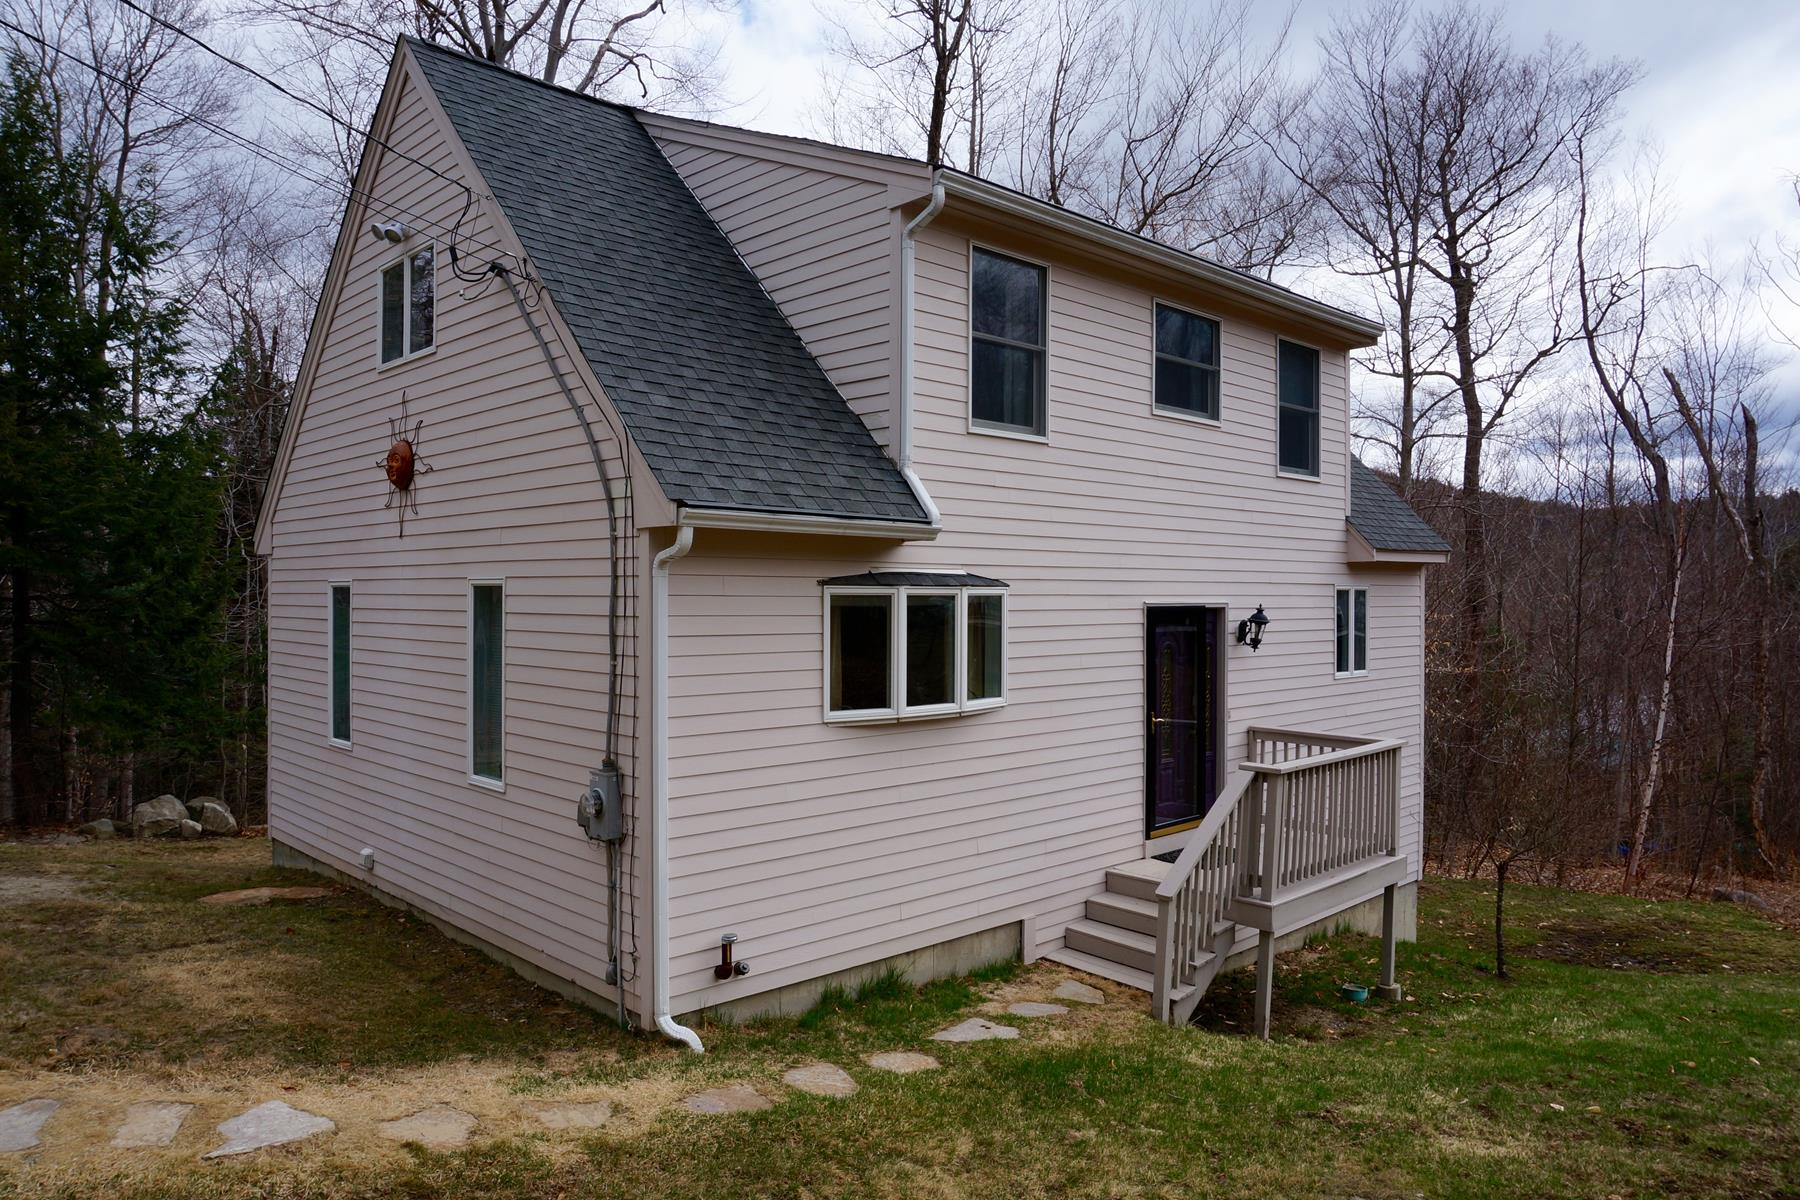 Single Family Home for Sale at 26 Hilltop Dr, Newbury Newbury, New Hampshire 03255 United States